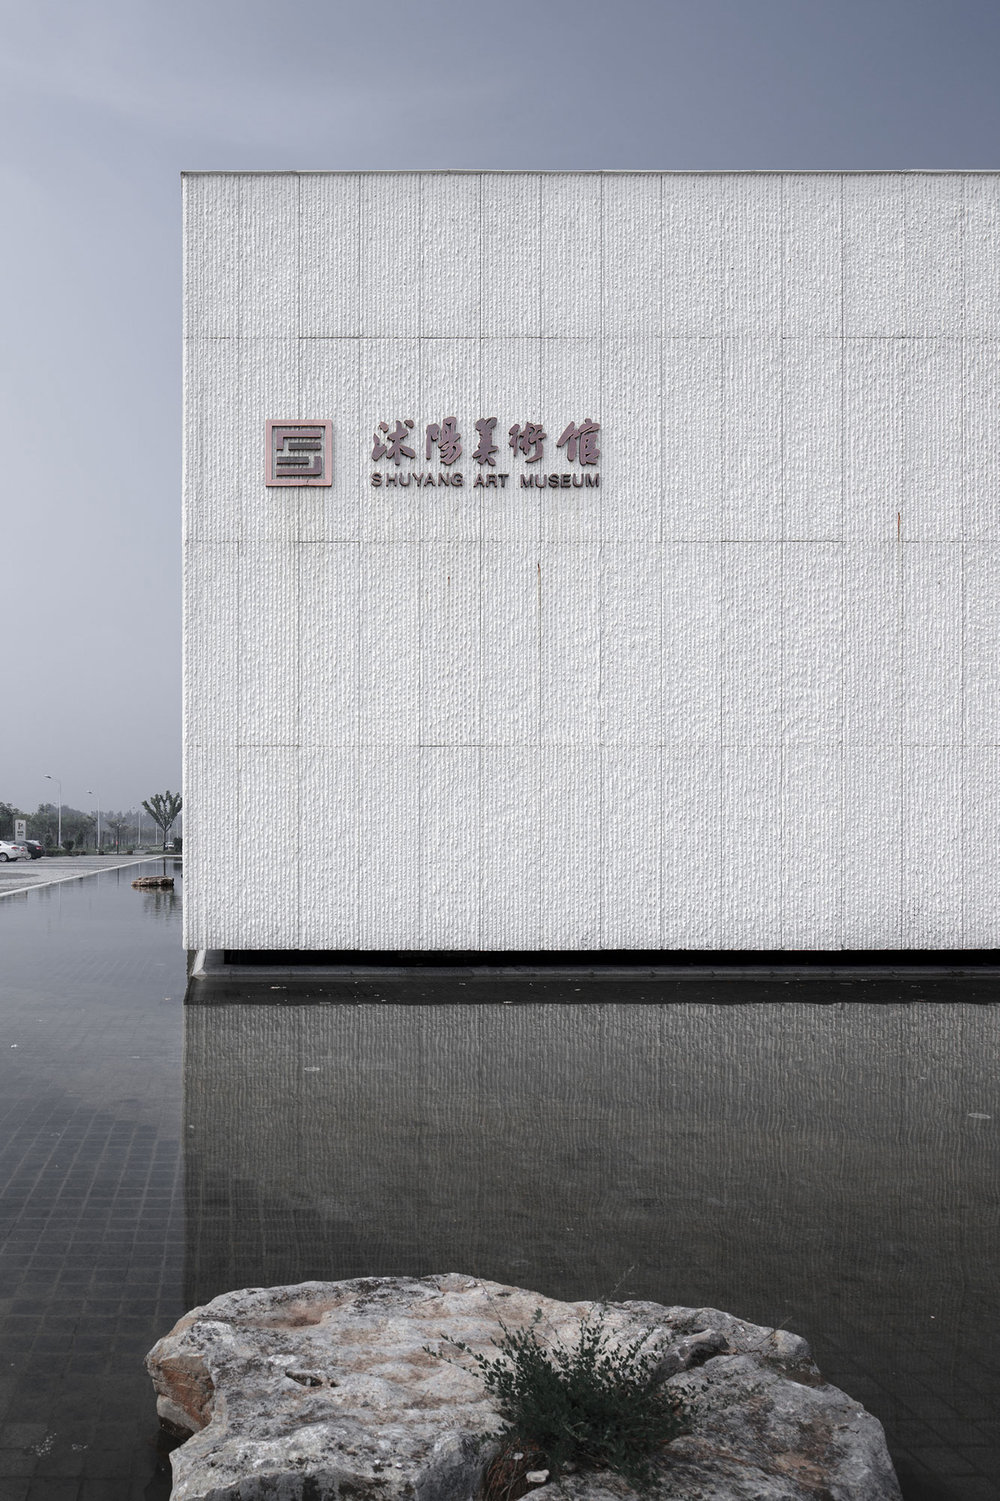 shuyang-art-gallery-uad-10-the-white-wall-facade.jpg